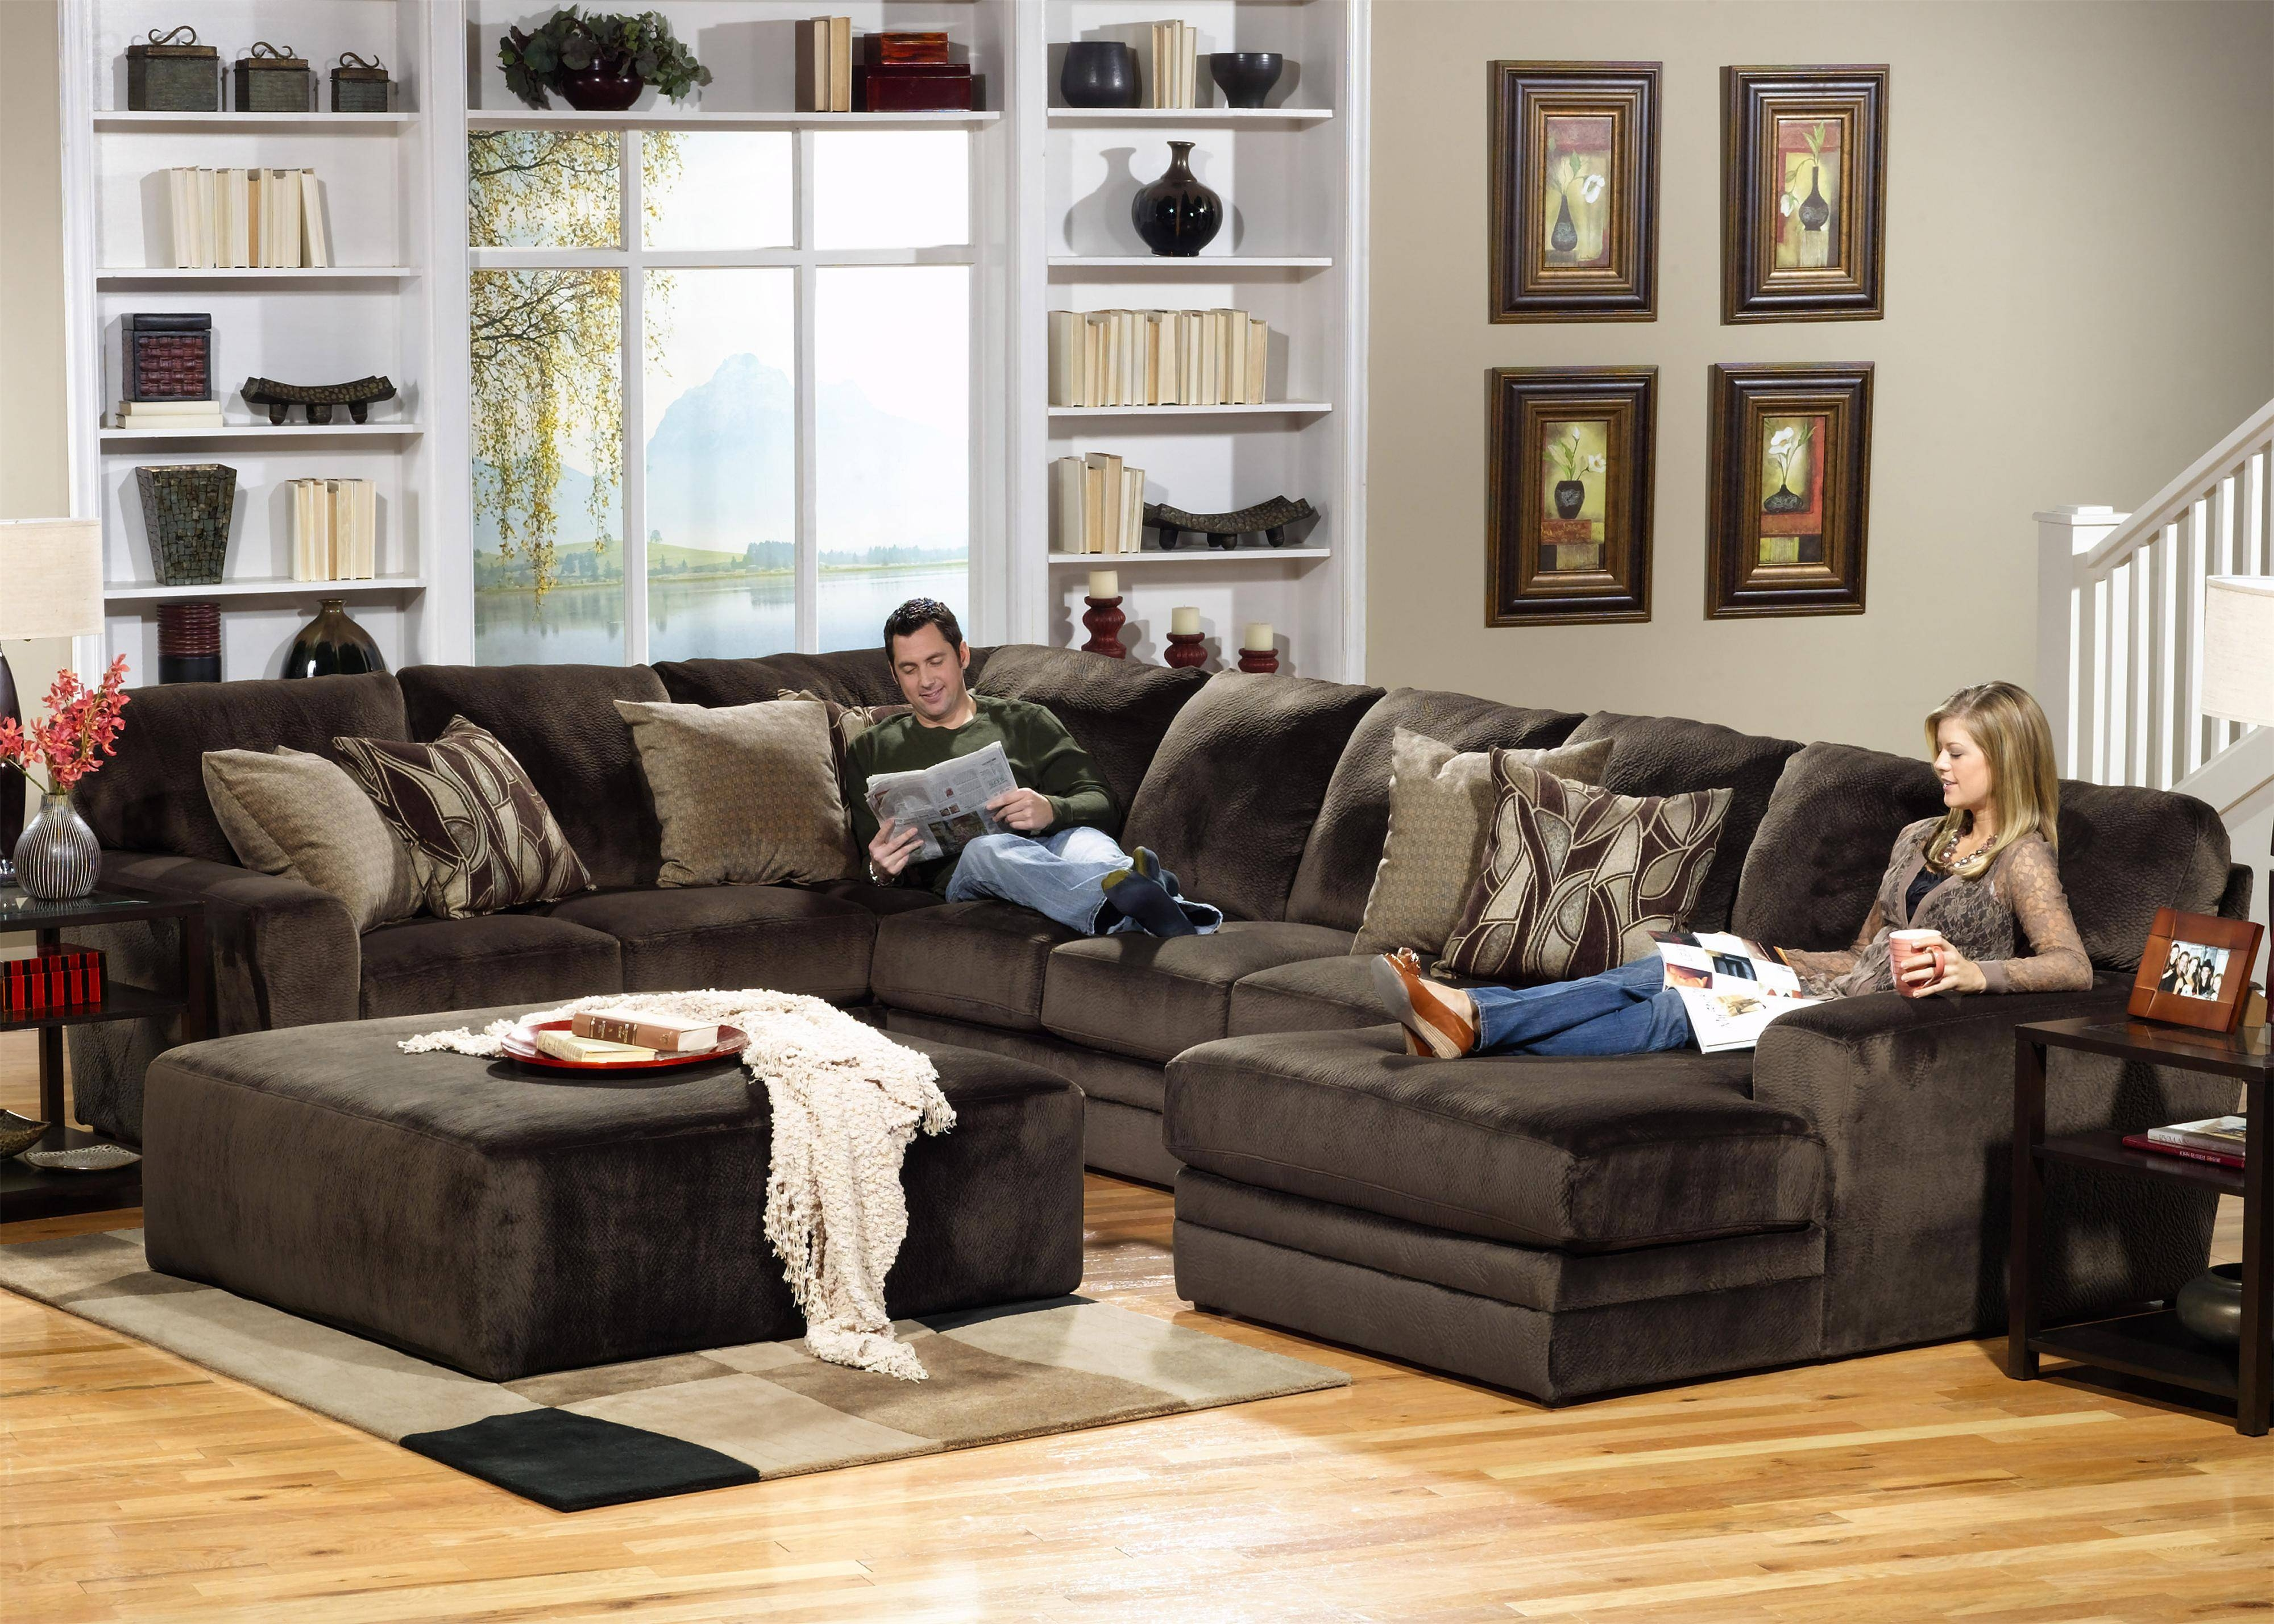 Astonishing 3 Piece Sectional Sofa With Recliner 35 For Your within Sectional Sofas Portland (Image 5 of 30)